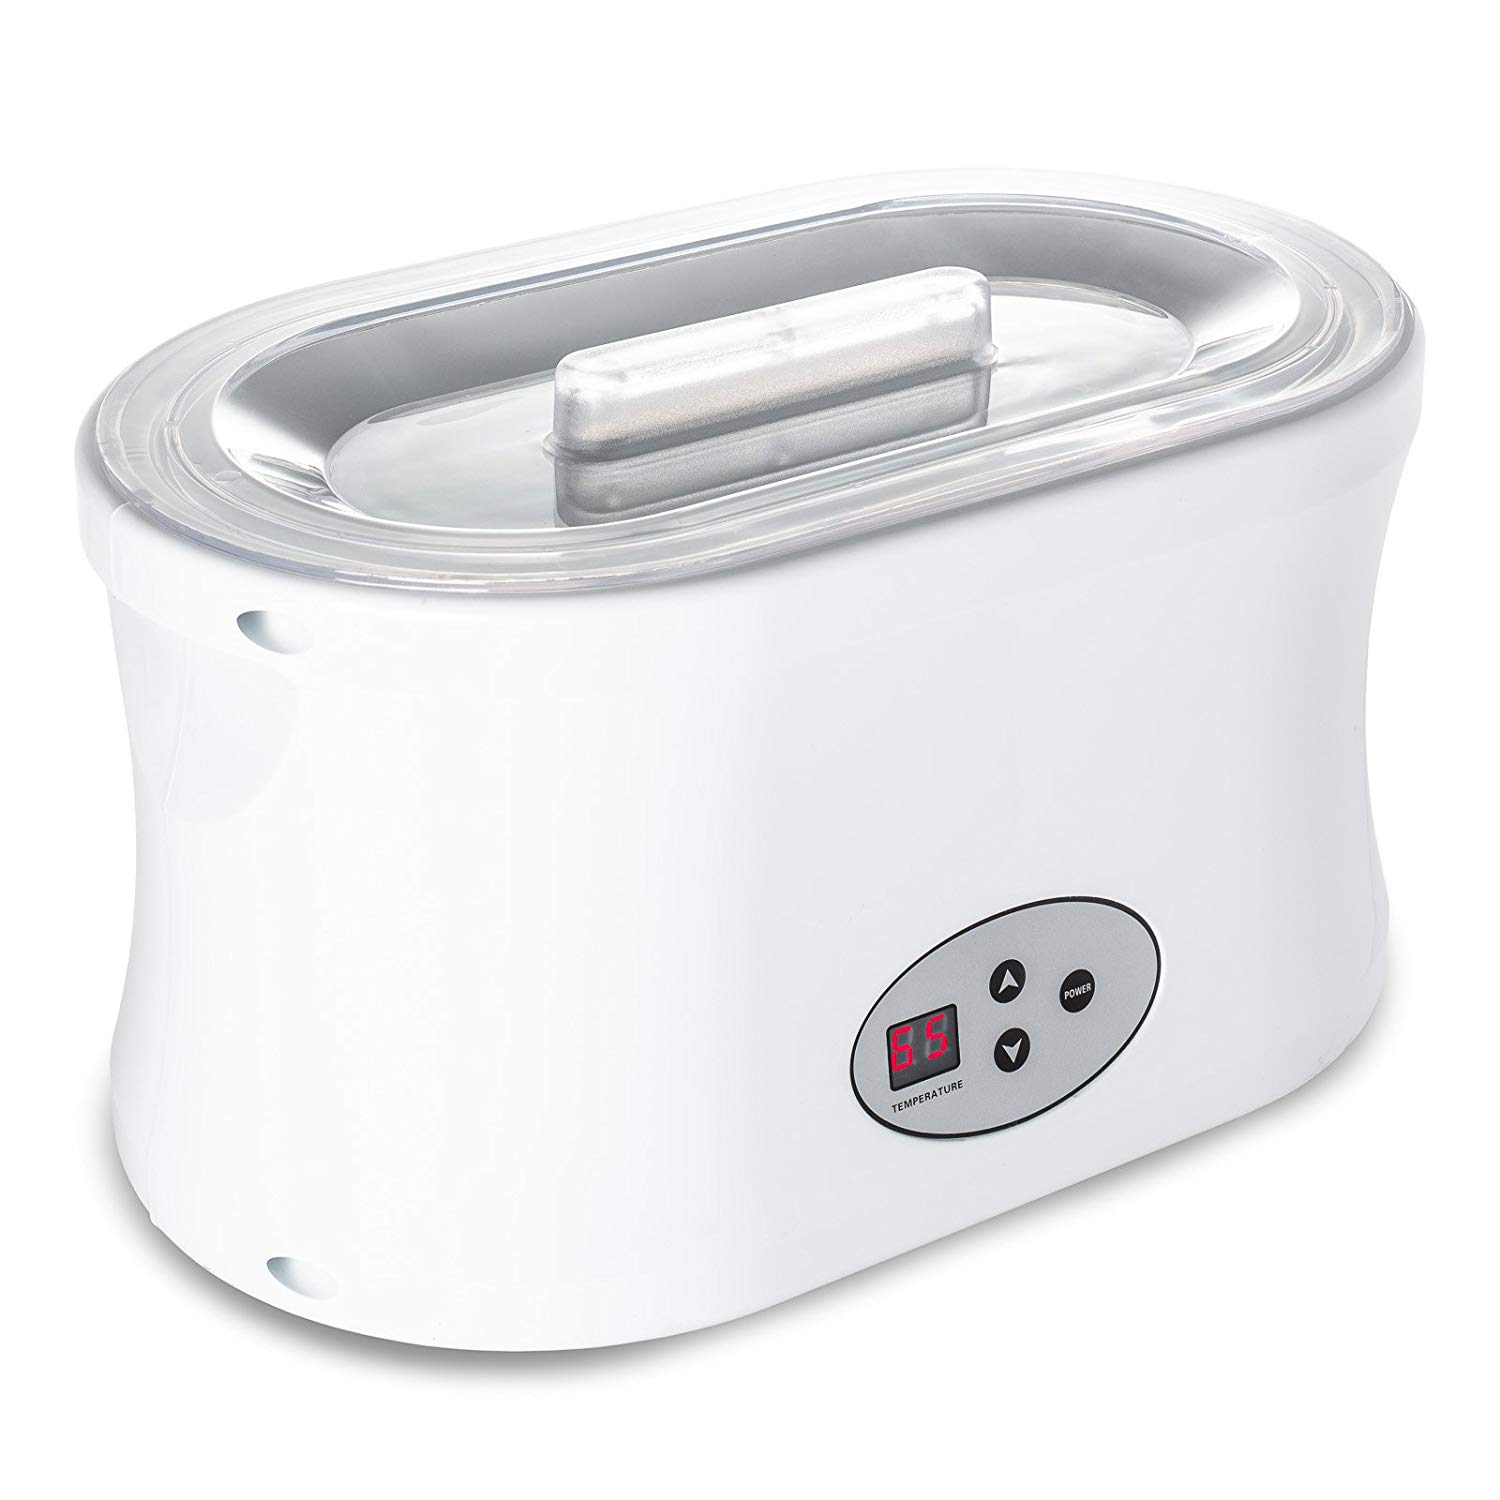 3. Salon Sundry Portable Electric Hot Bath: